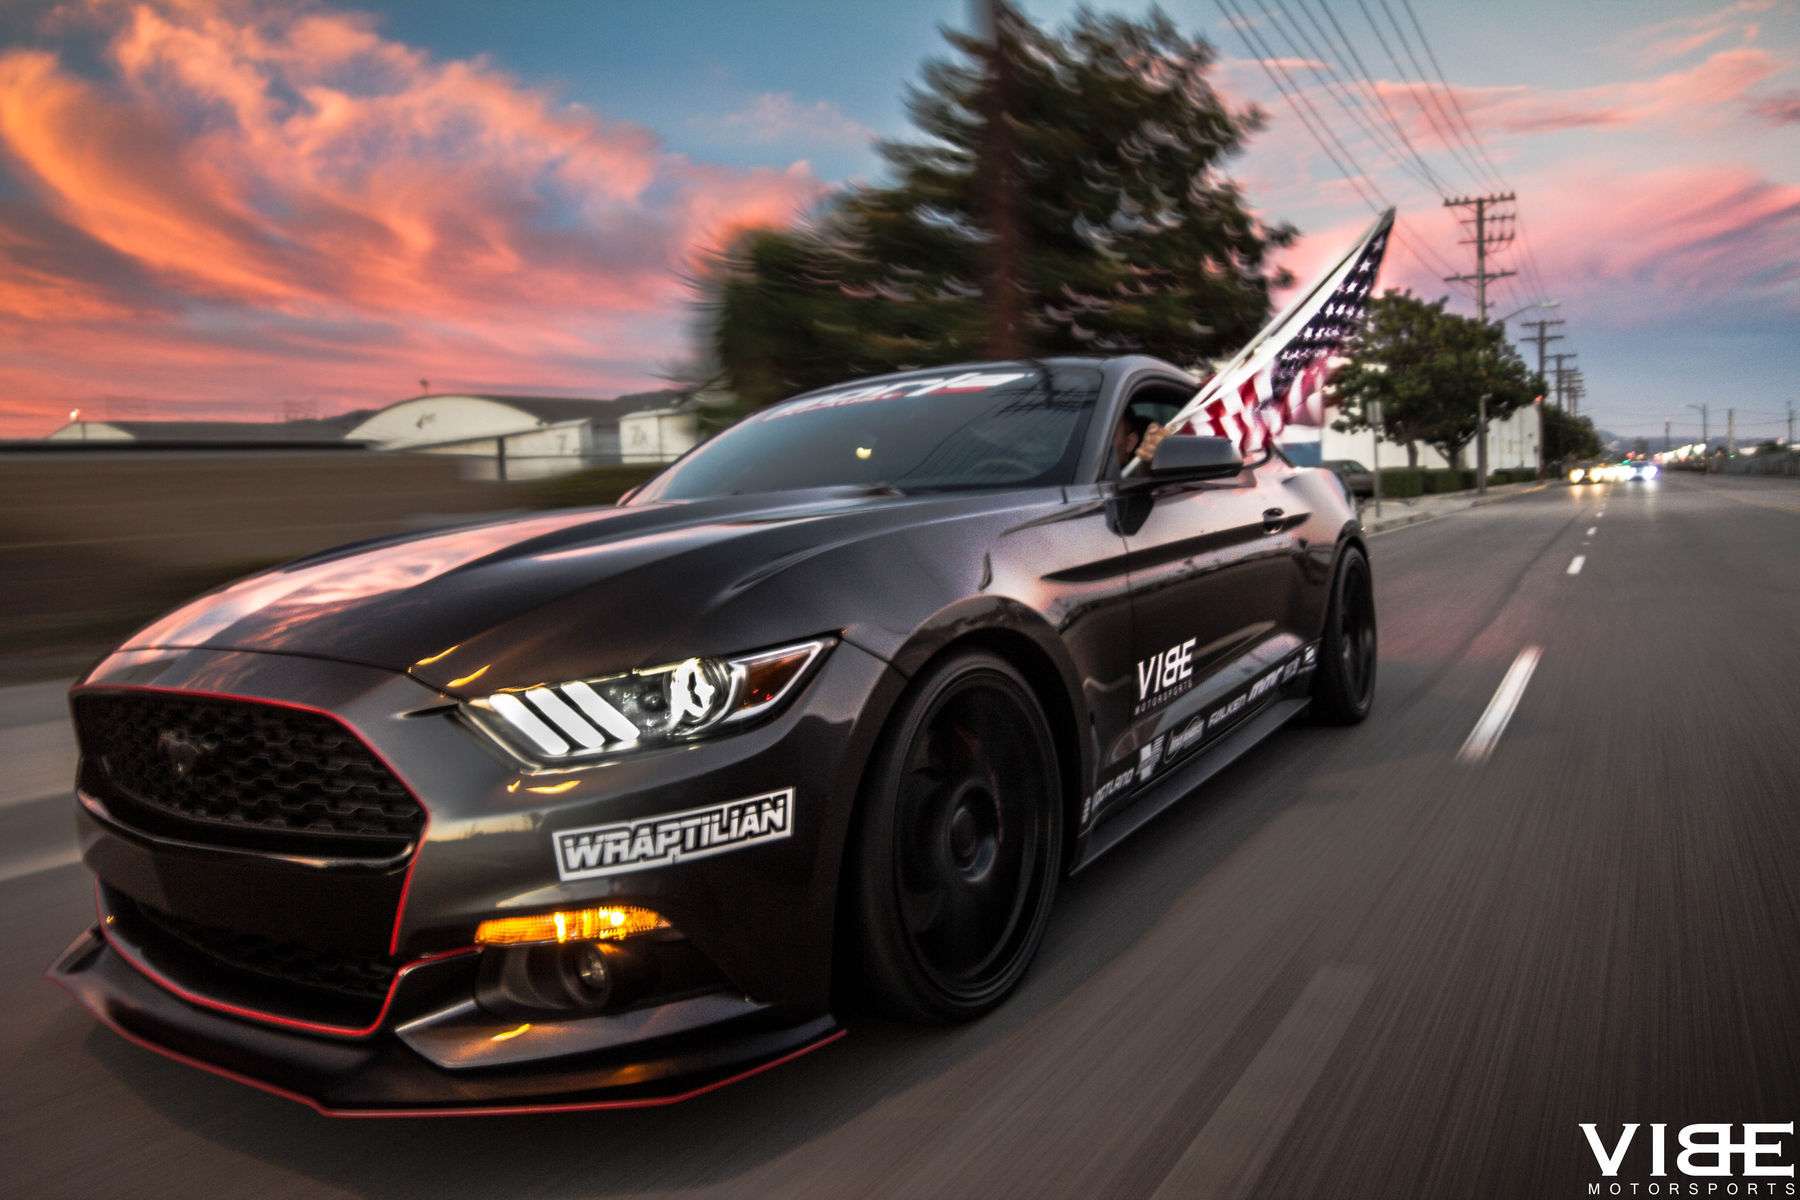 2015 Ford Mustang | '15 EcoBoost Mustang on 20's - USA